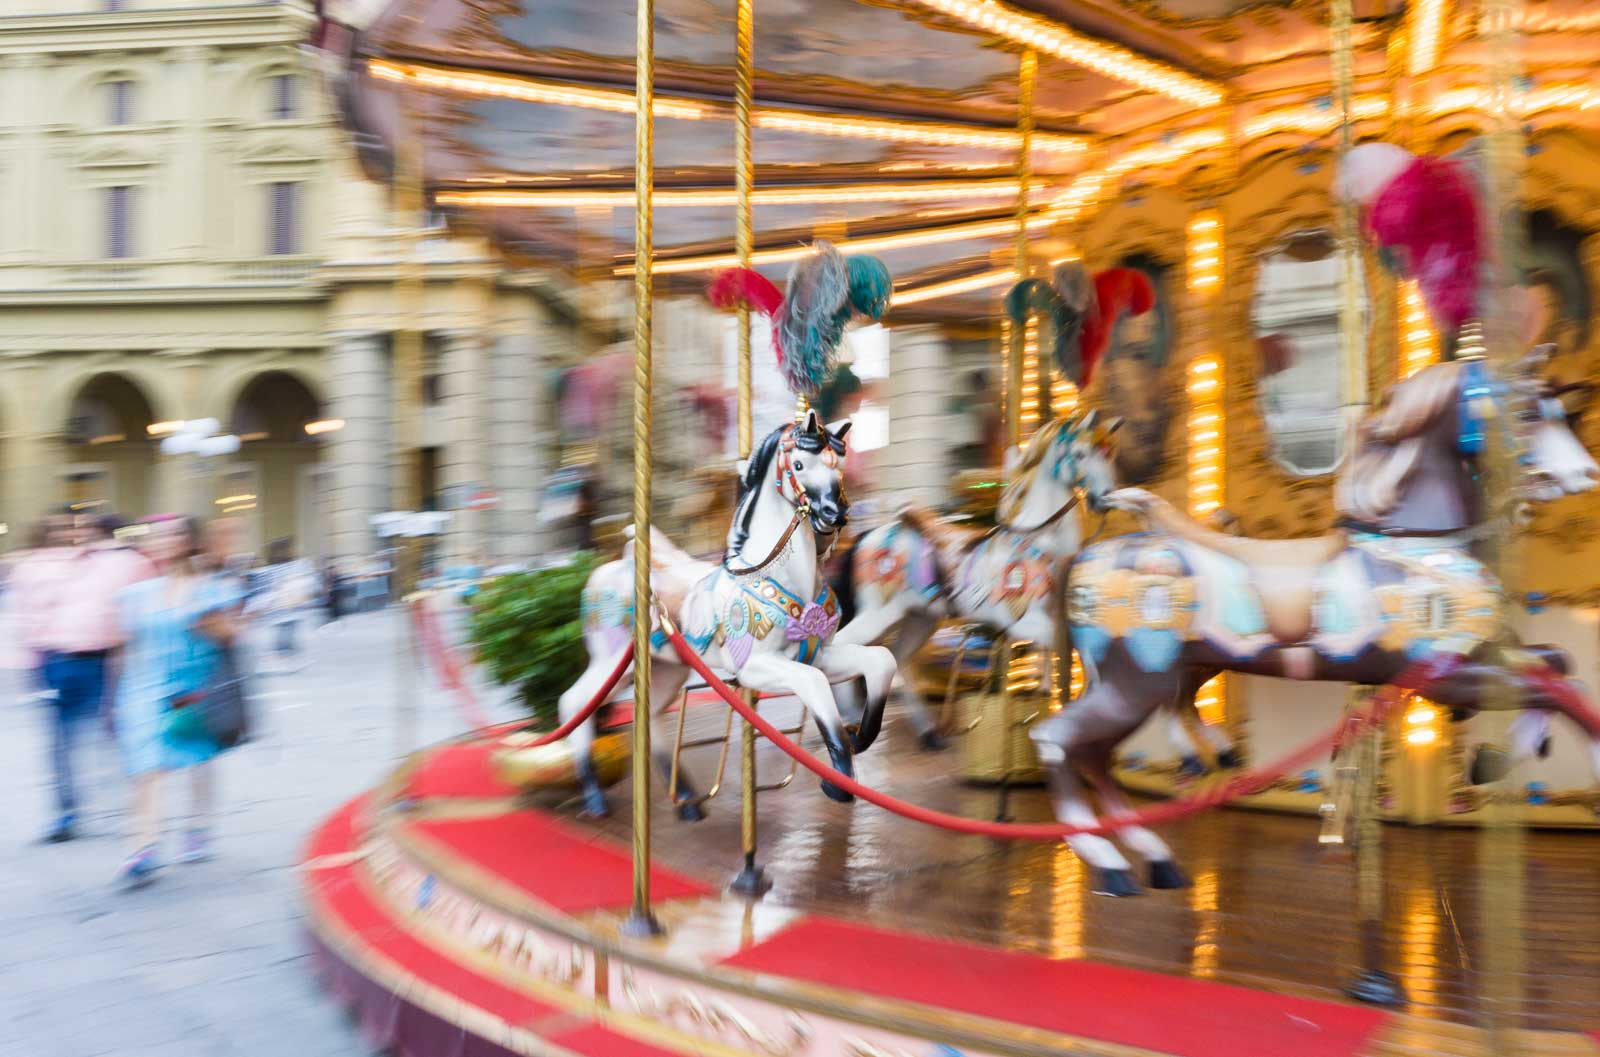 motion panning creative photography technique photo by Kathy Linford